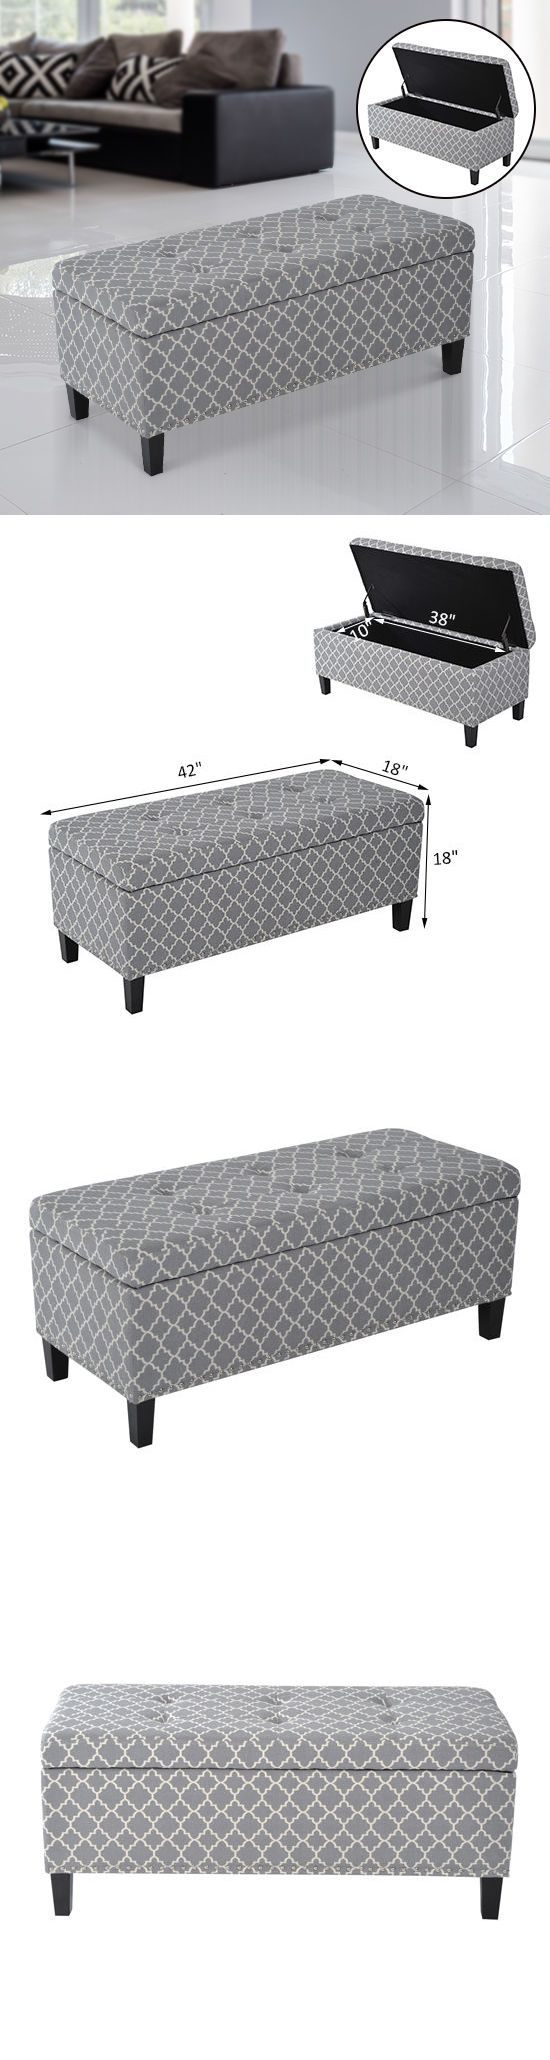 Ottomans Footstools and Poufs 20490: Storage Bench Ottoman Furniture Grey Footstool Organizer Elegant Seat Box Fabric -> BUY IT NOW ONLY: $99.99 on eBay!